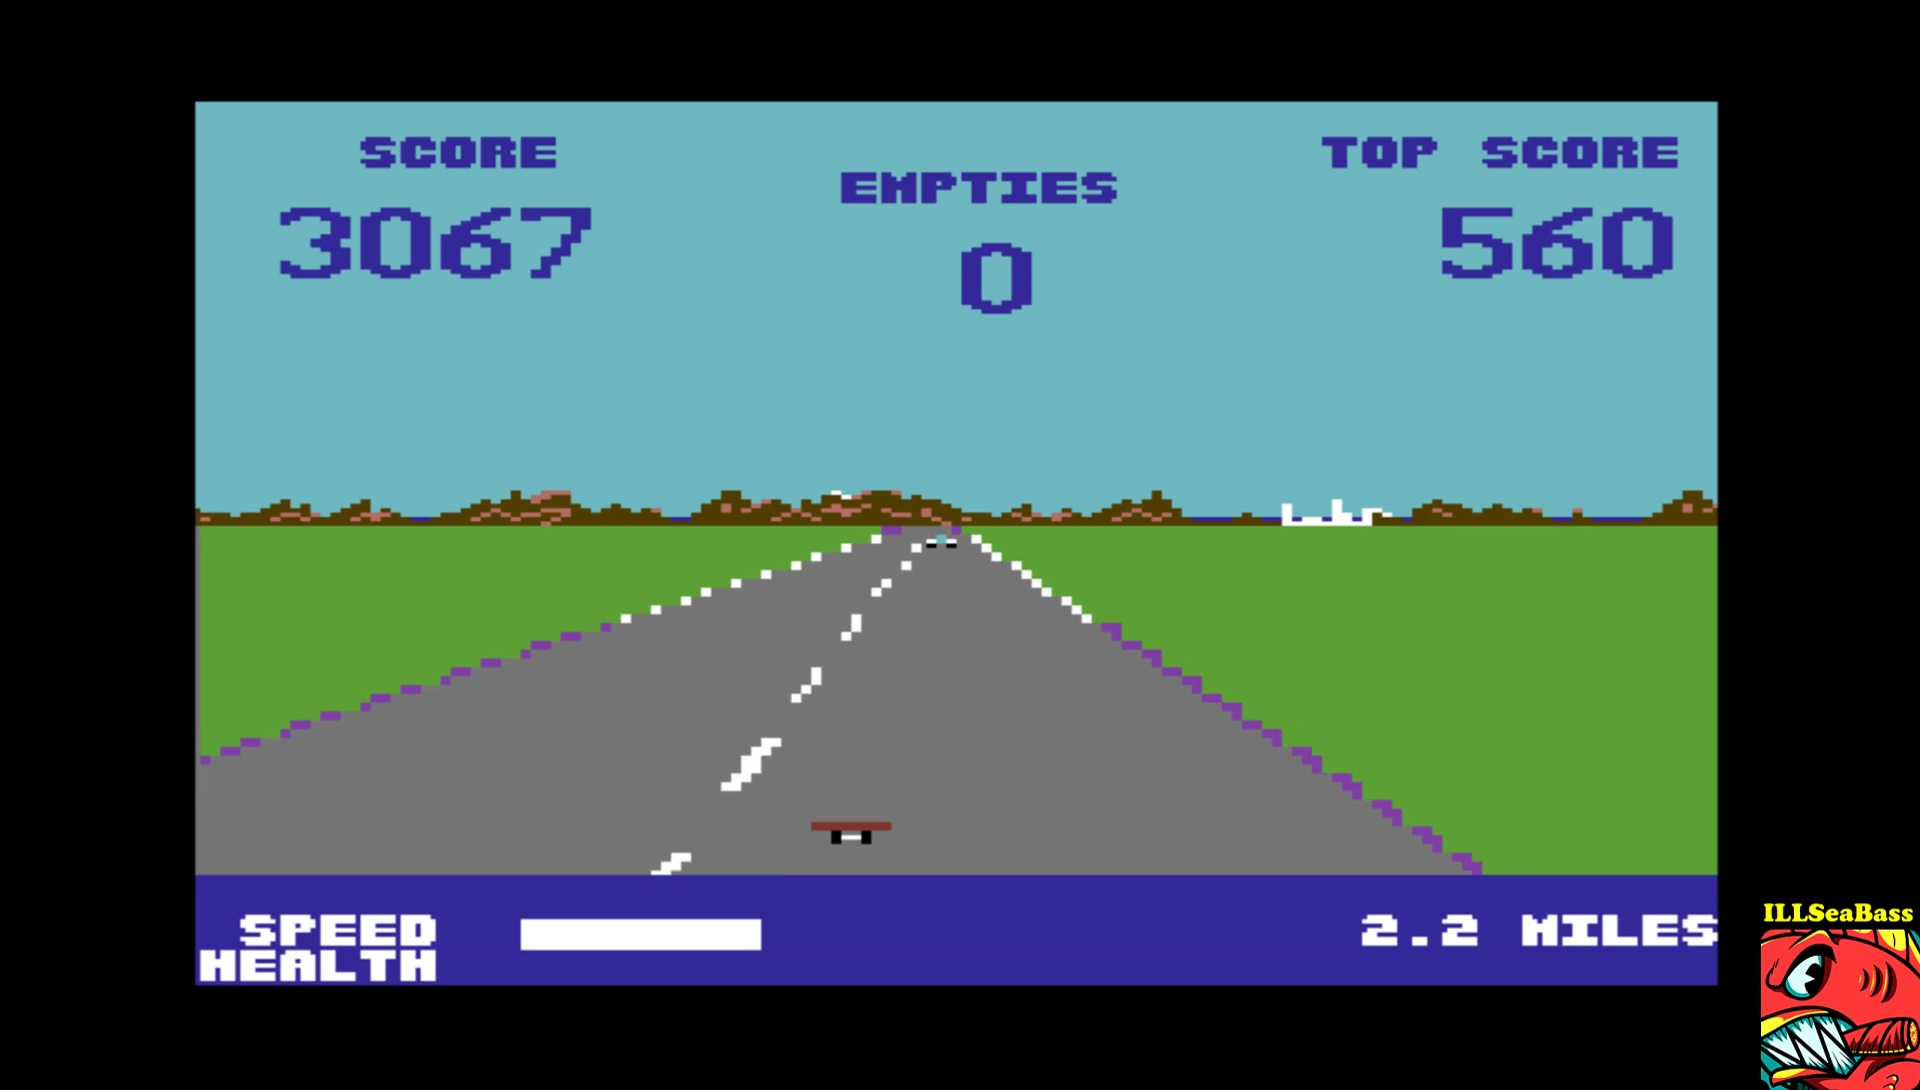 ILLSeaBass: Street Surfer (Commodore 64 Emulated) 3,067 points on 2017-04-11 00:29:31